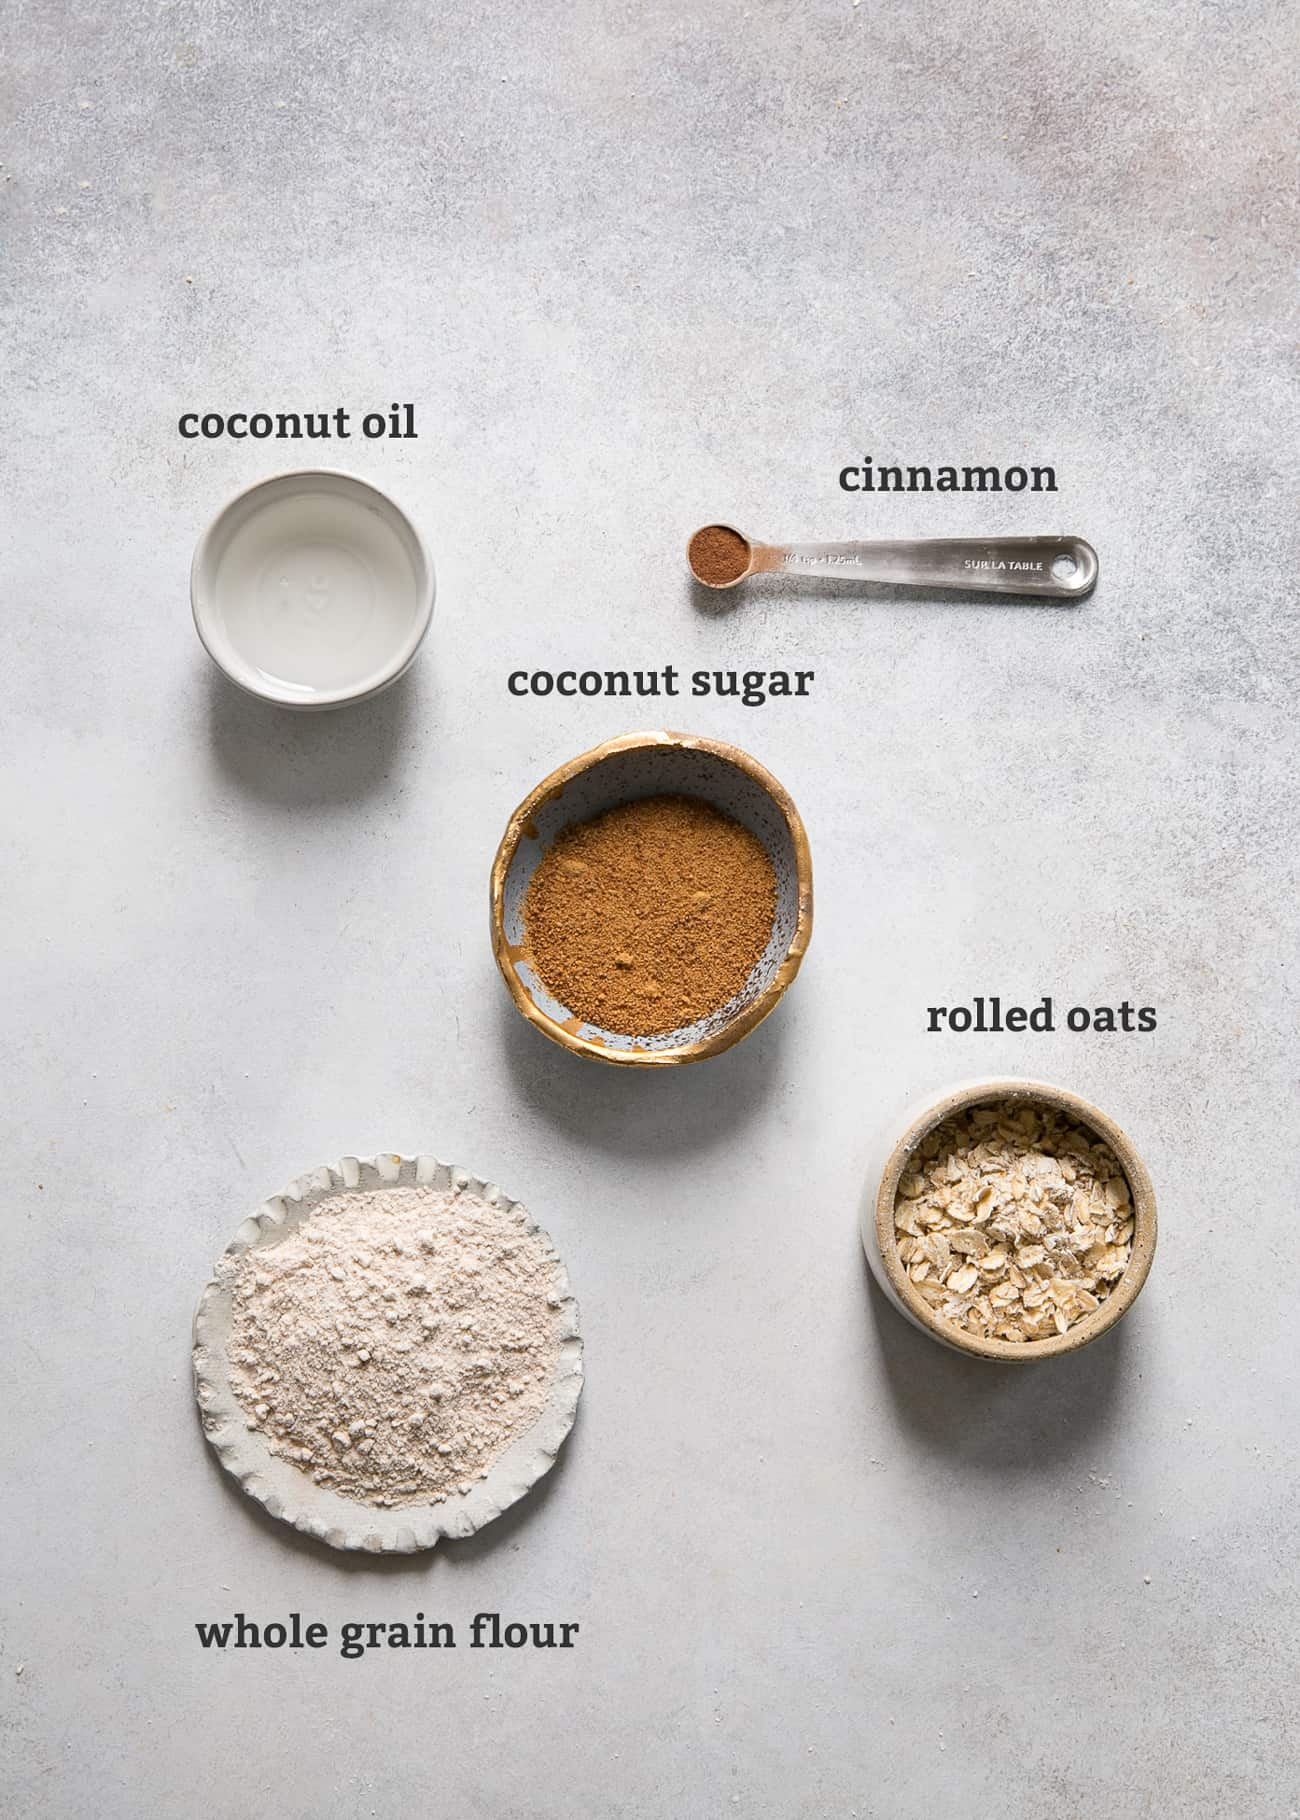 ingredients in bowls and spoons on board; text labeled: coconut oil, cinnamon, coconut sugar, rolled oats, whole grain flour